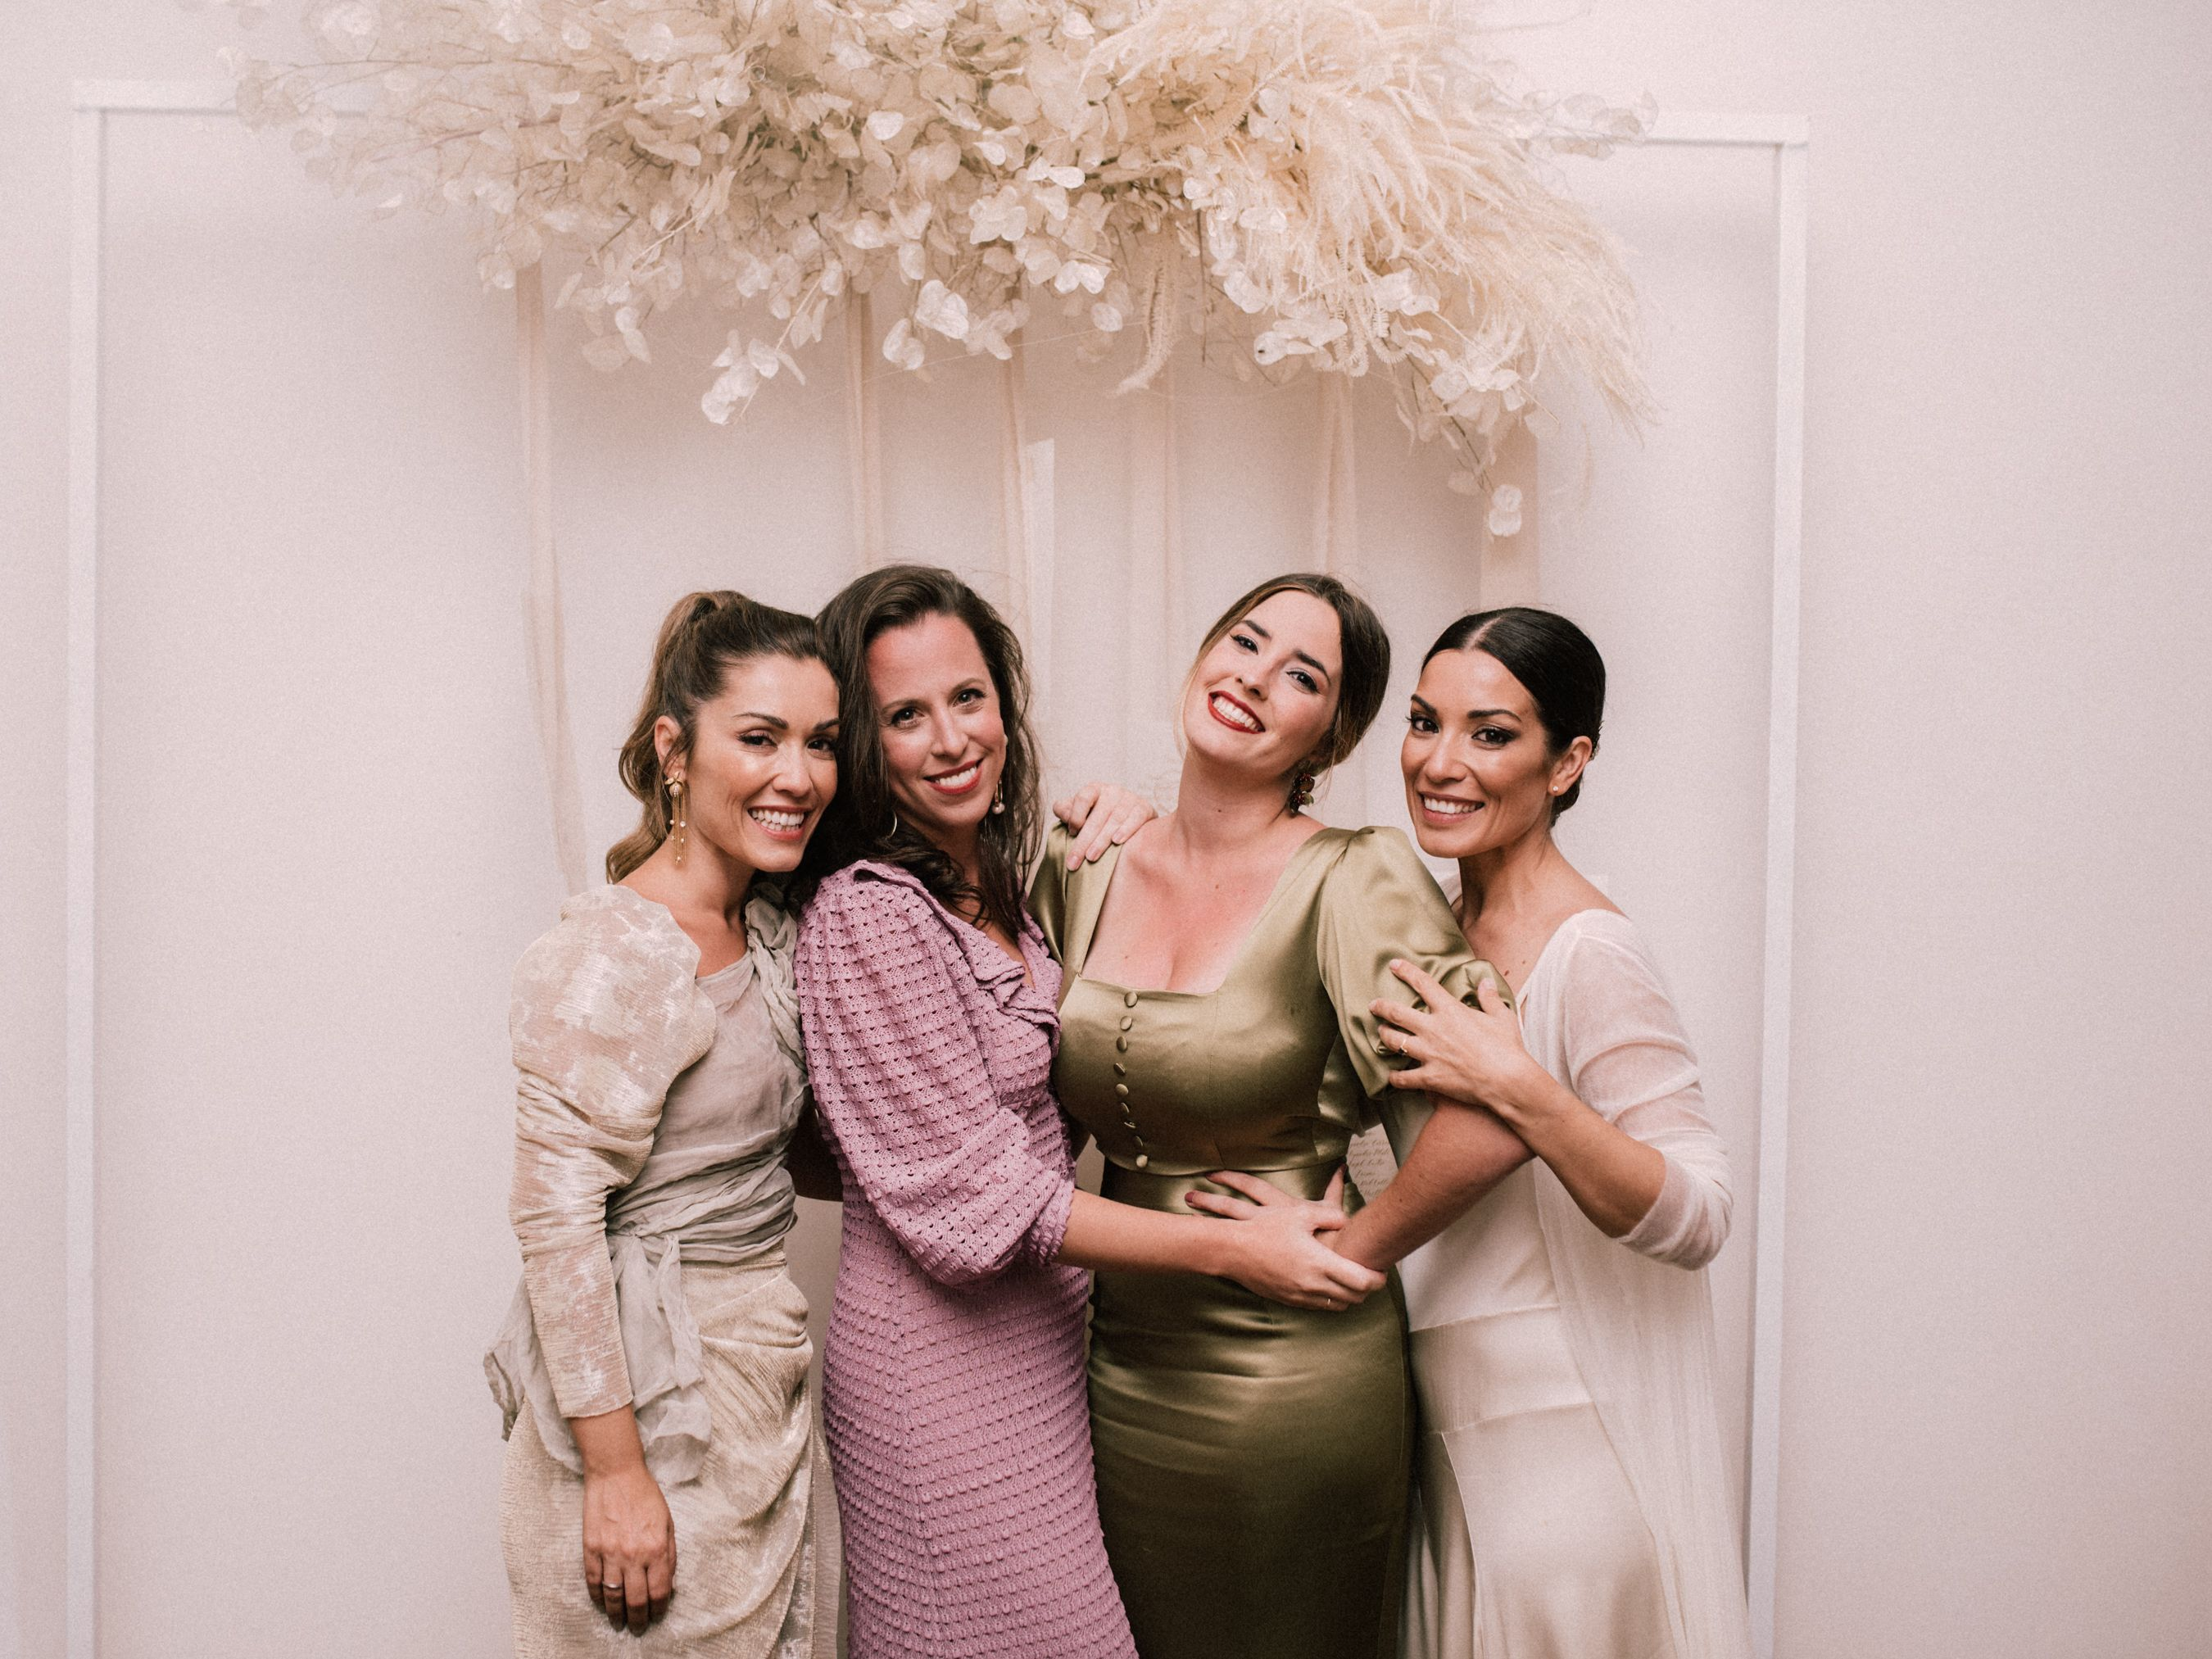 Equipo Weddings With Love: Patricia, Ana, Cristina y Lidia